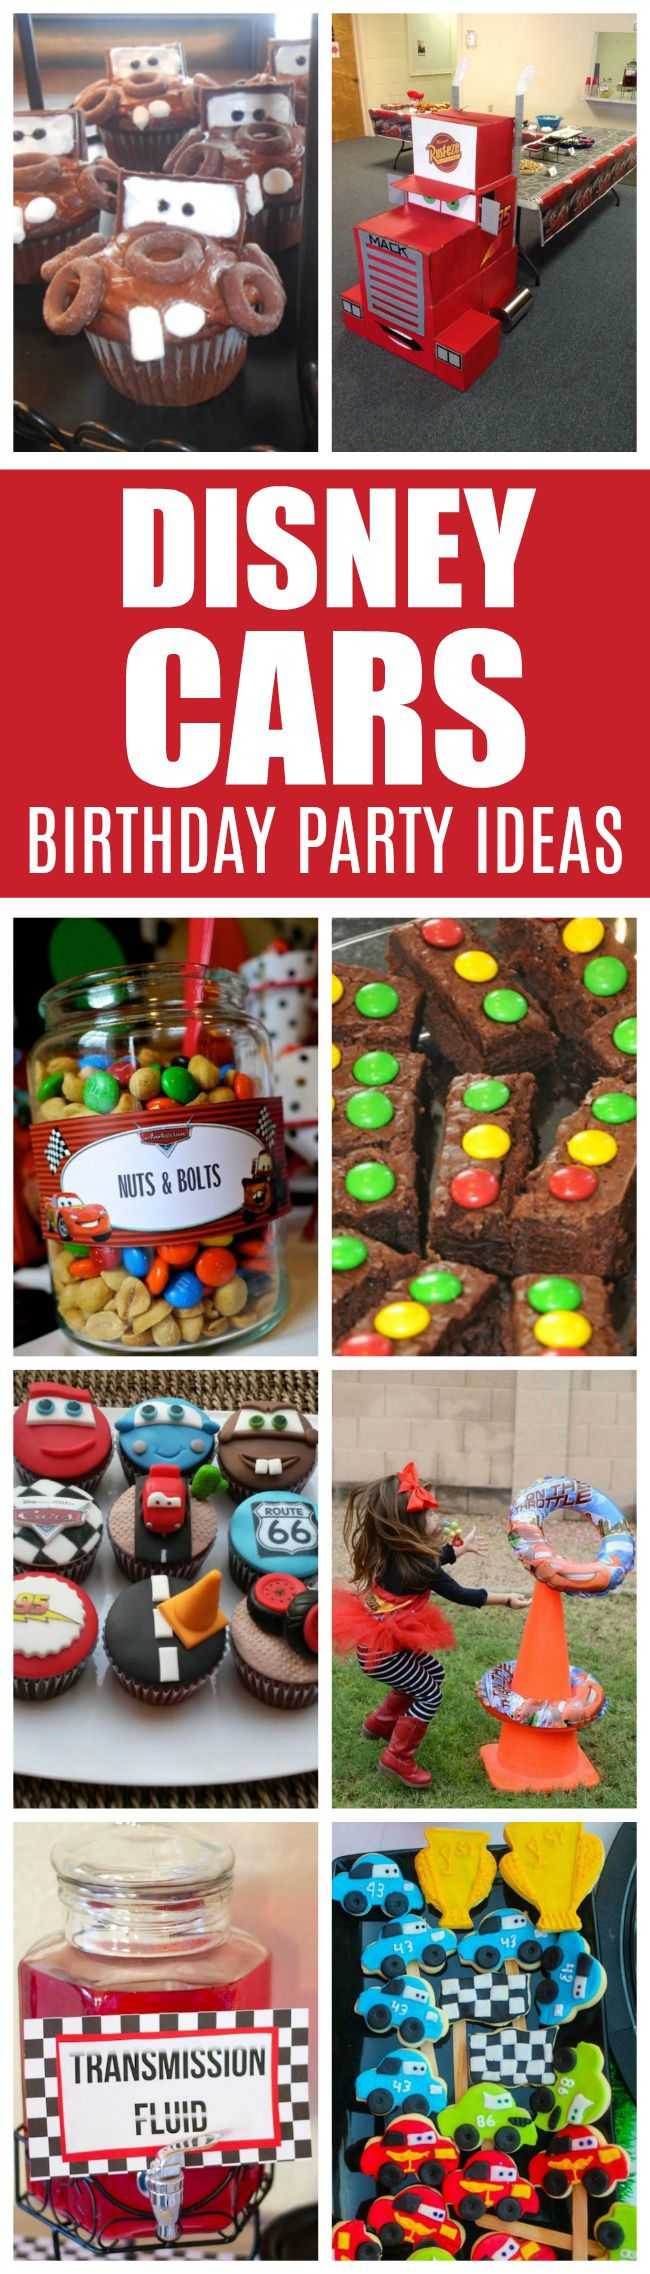 20 Disney Pixars Cars Party Ideas | Pretty My Party Kindergeburtstag feiern Idee…